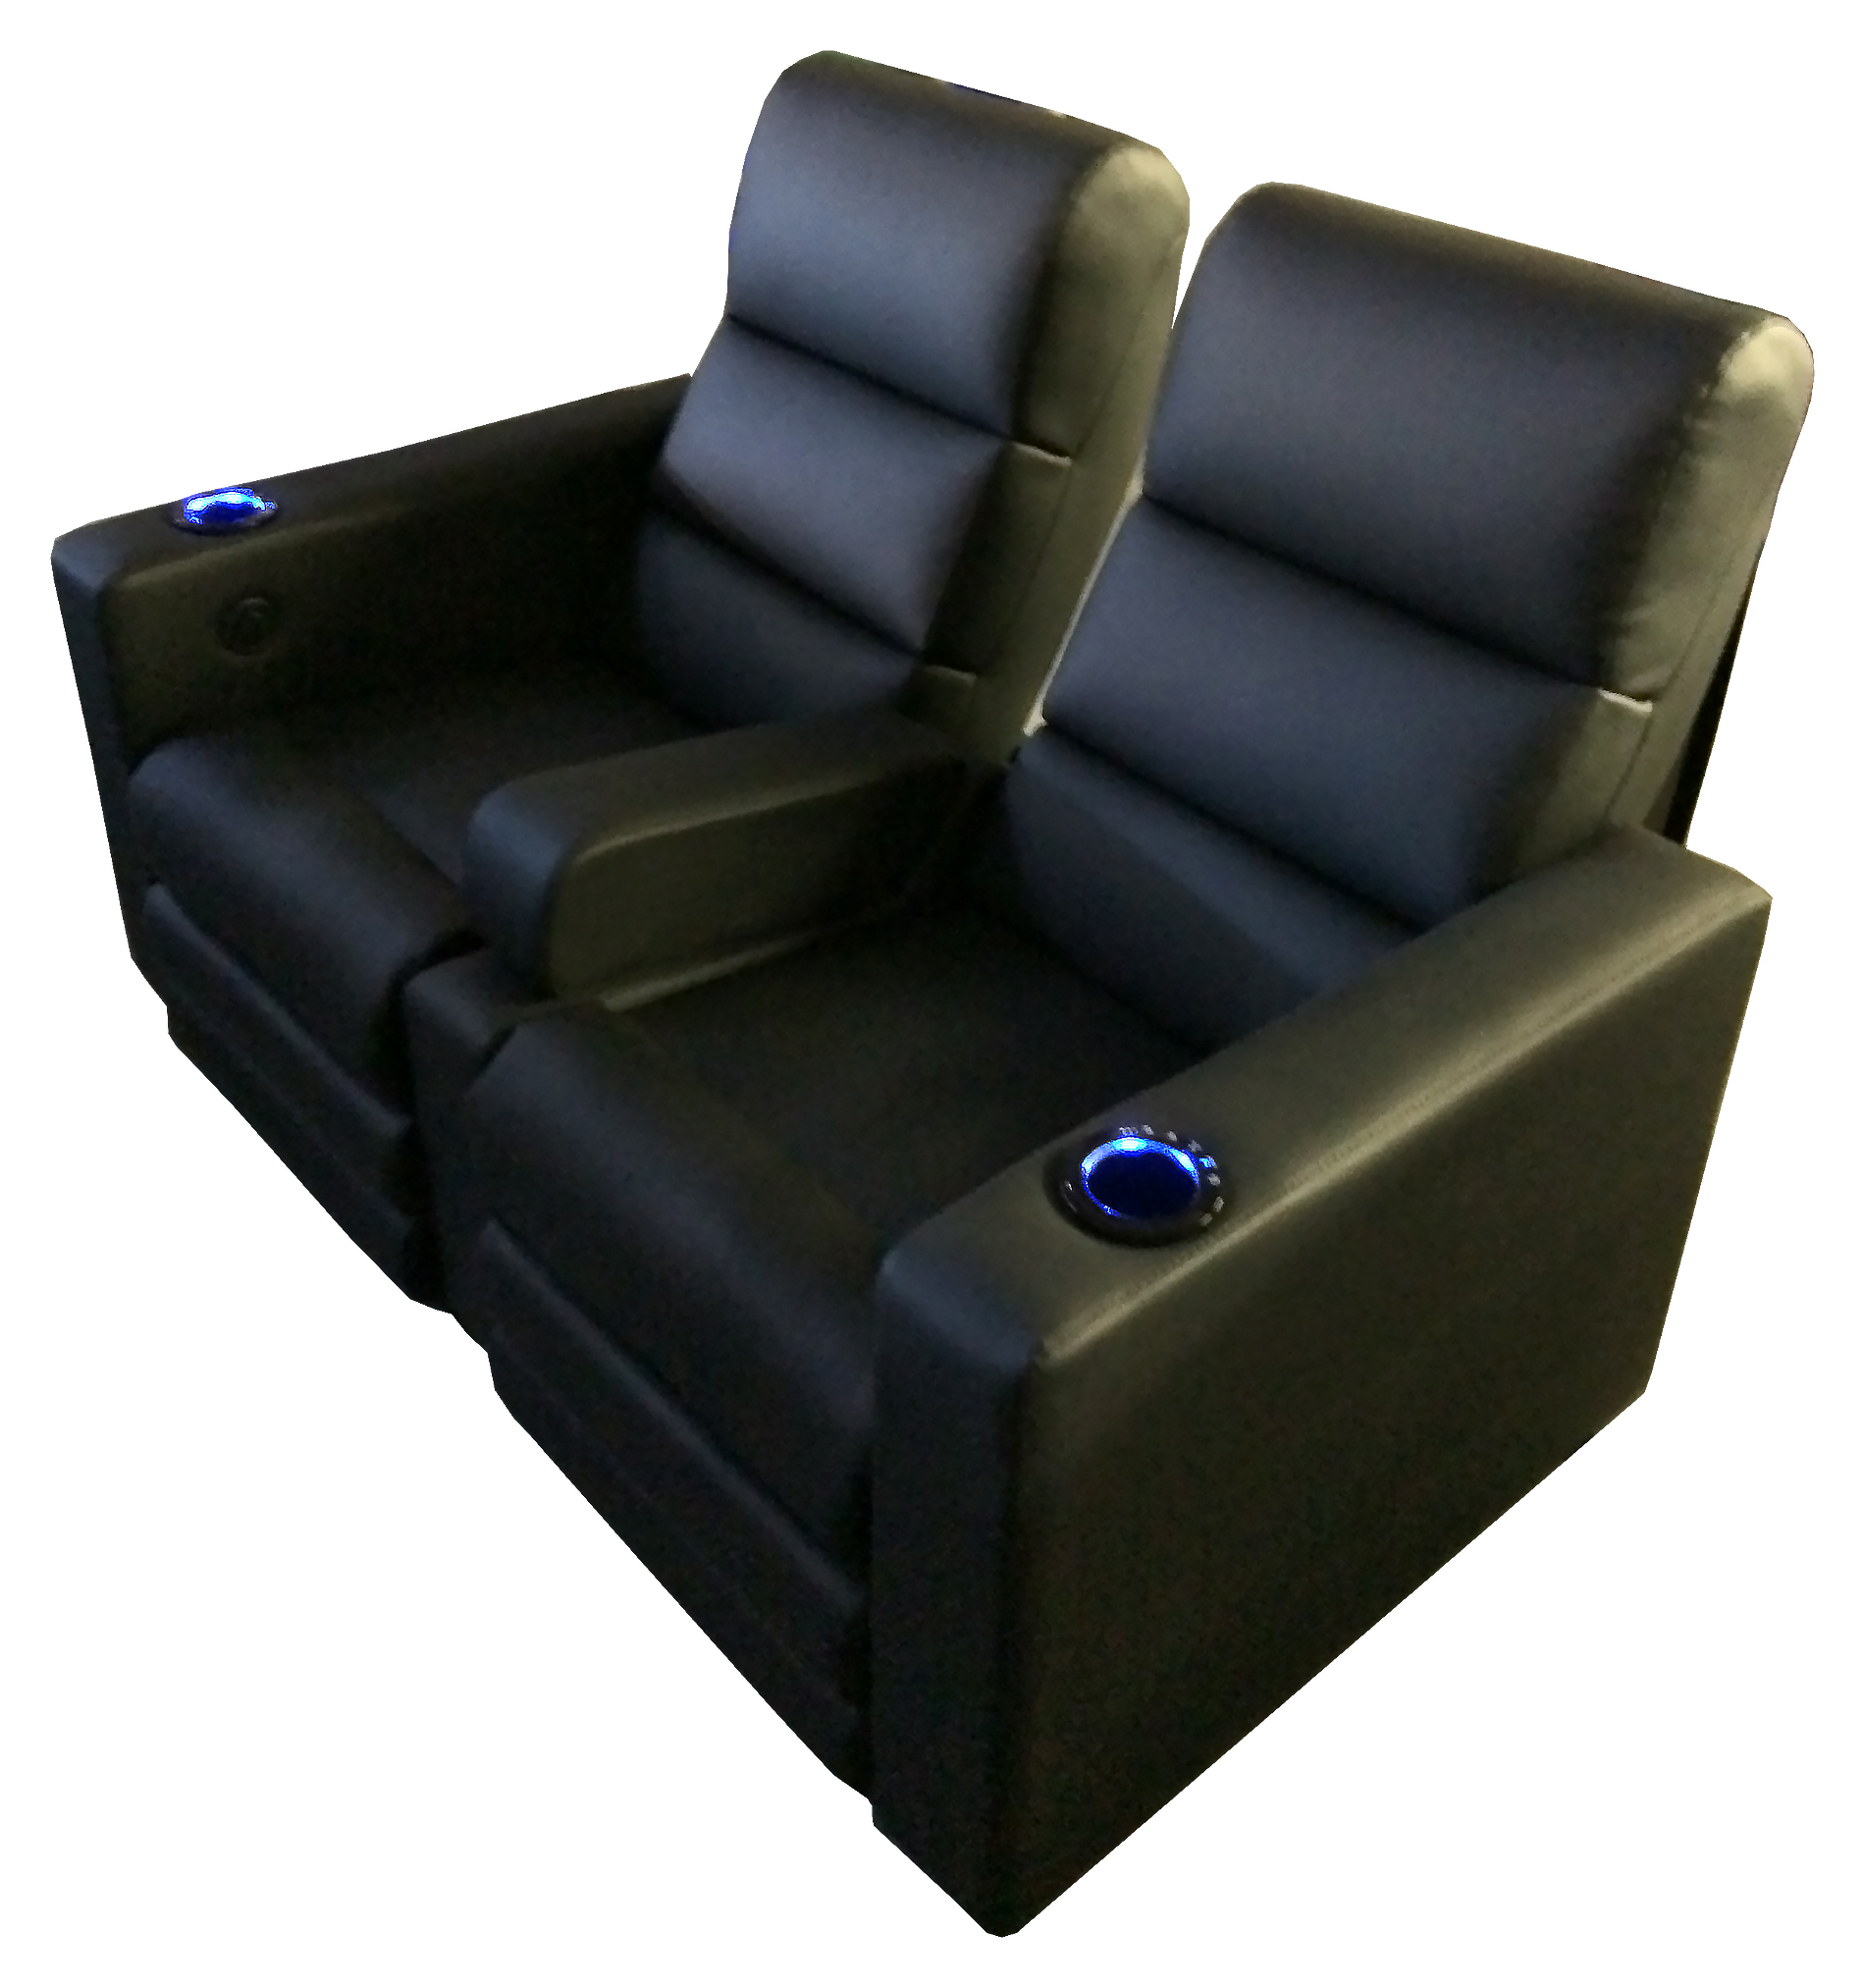 High End Furniture Edmonton New Home Theater Seats Want To Add To Your Movie Watching